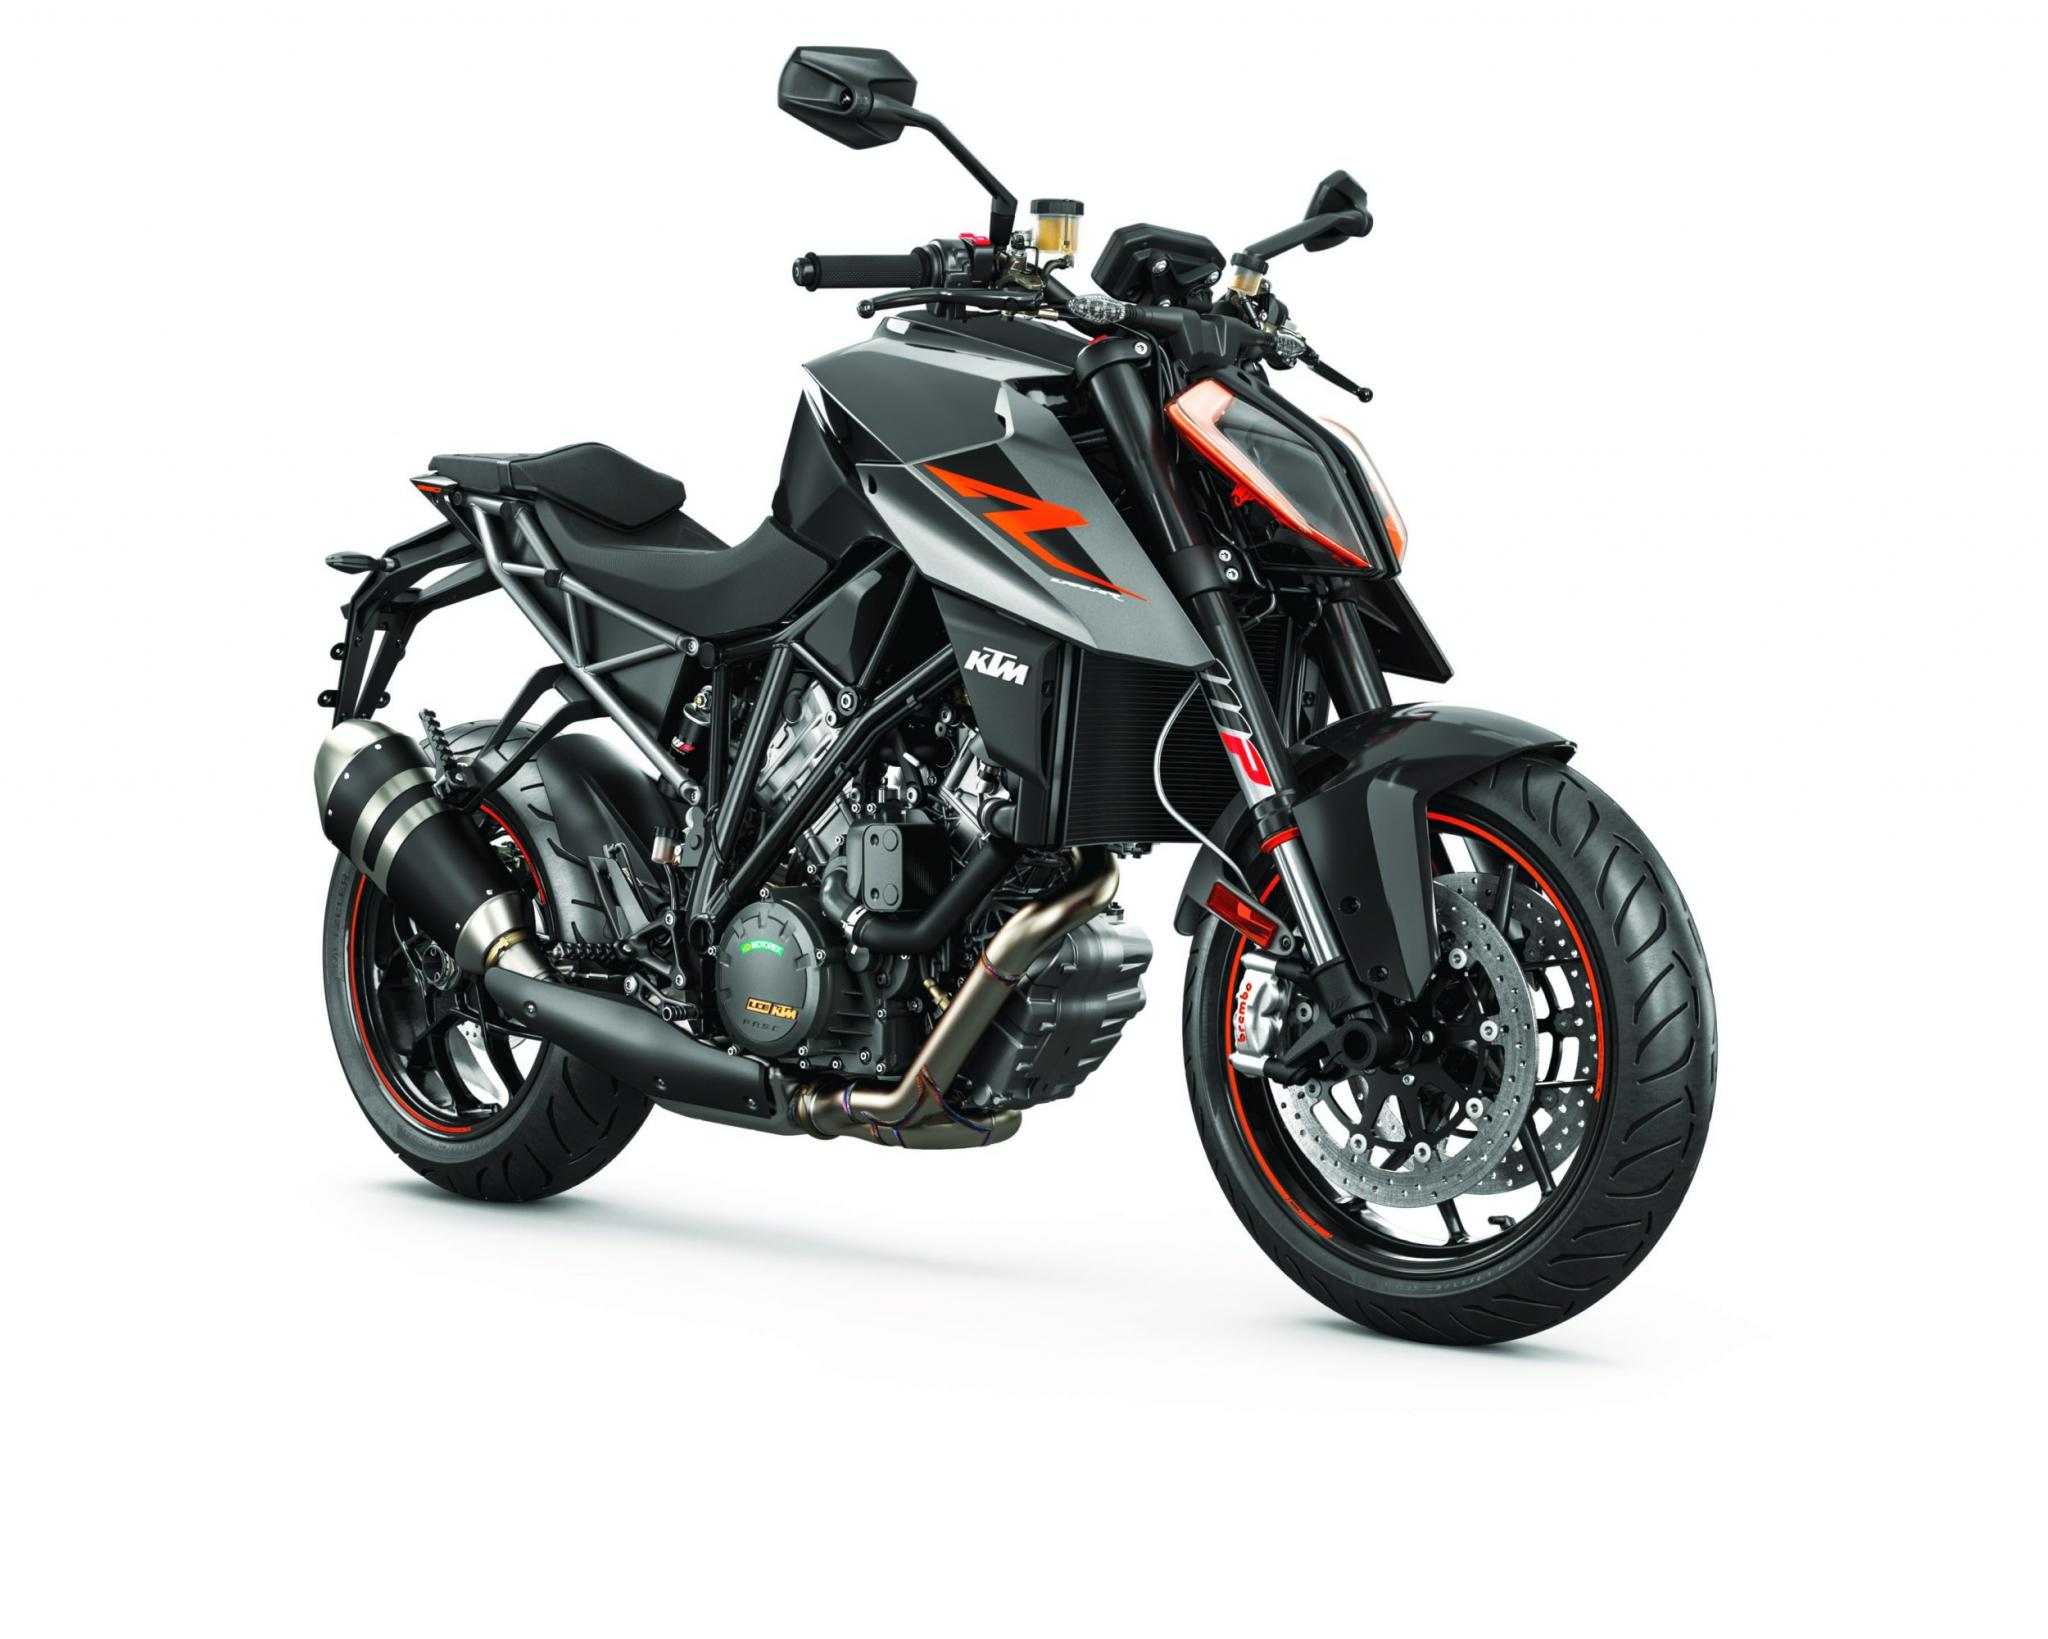 ktm 1290 super duke r 2017 motorrad fotos motorrad bilder. Black Bedroom Furniture Sets. Home Design Ideas